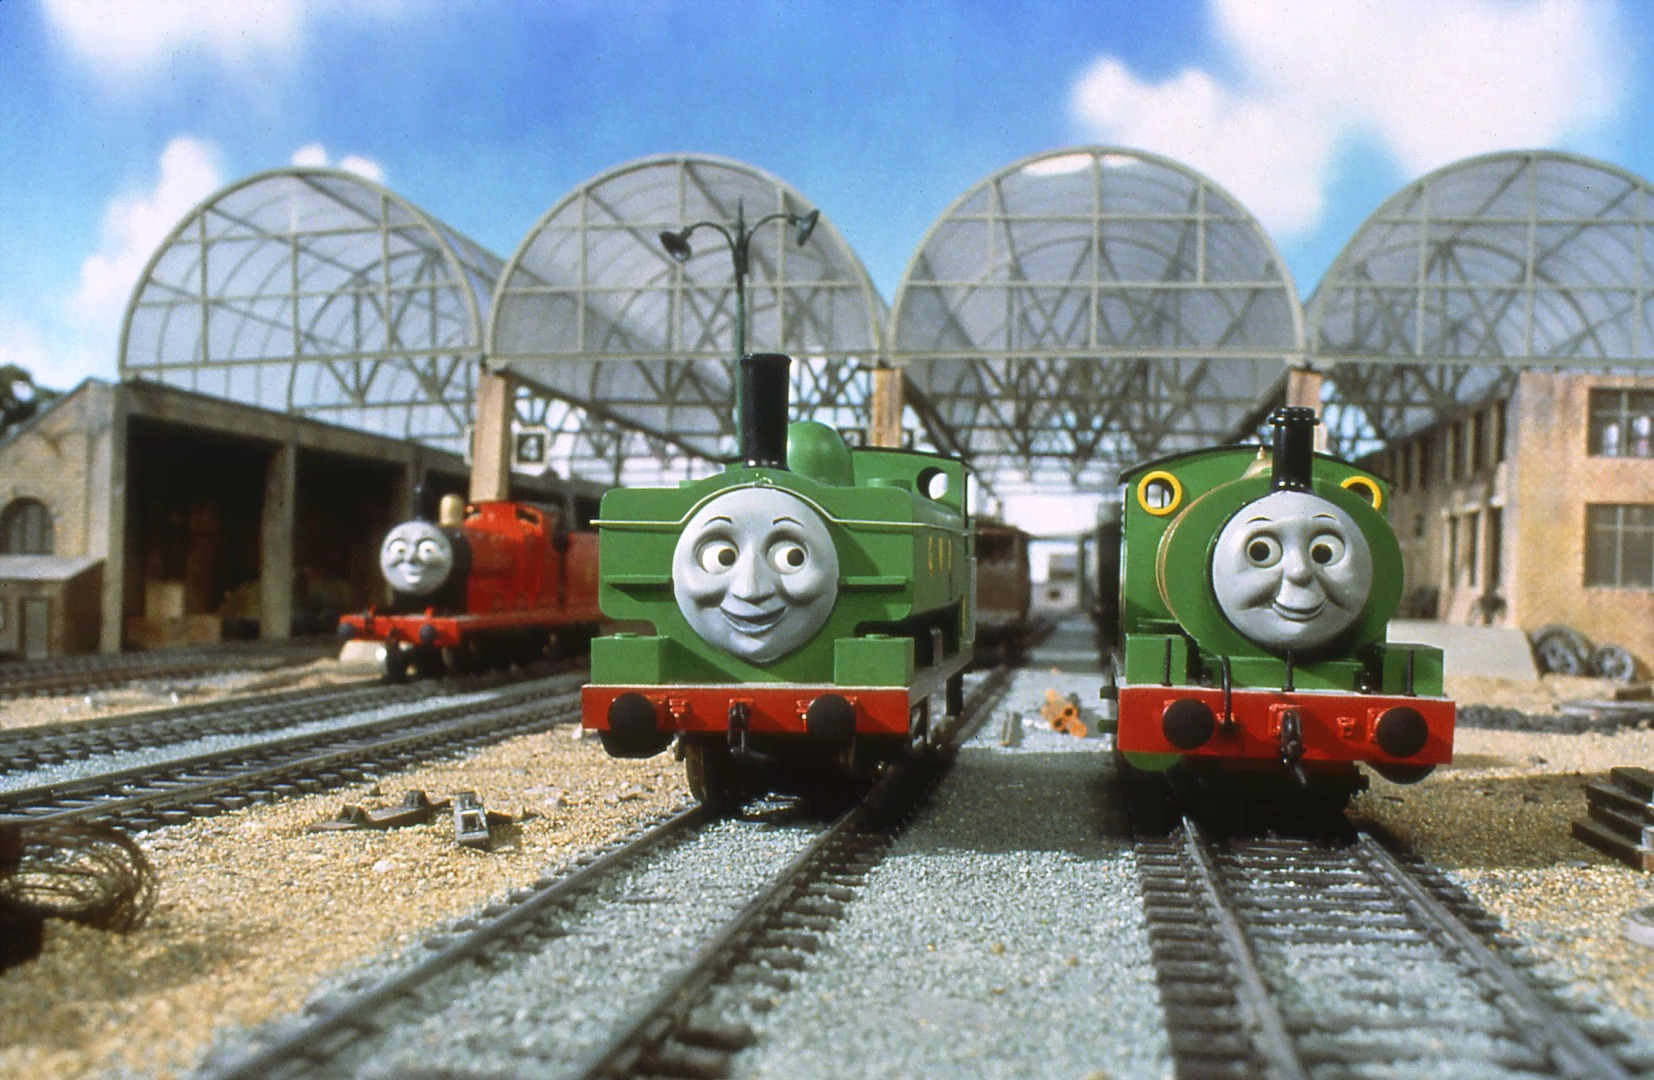 image ducktakescharge3jpg thomas the tank engine